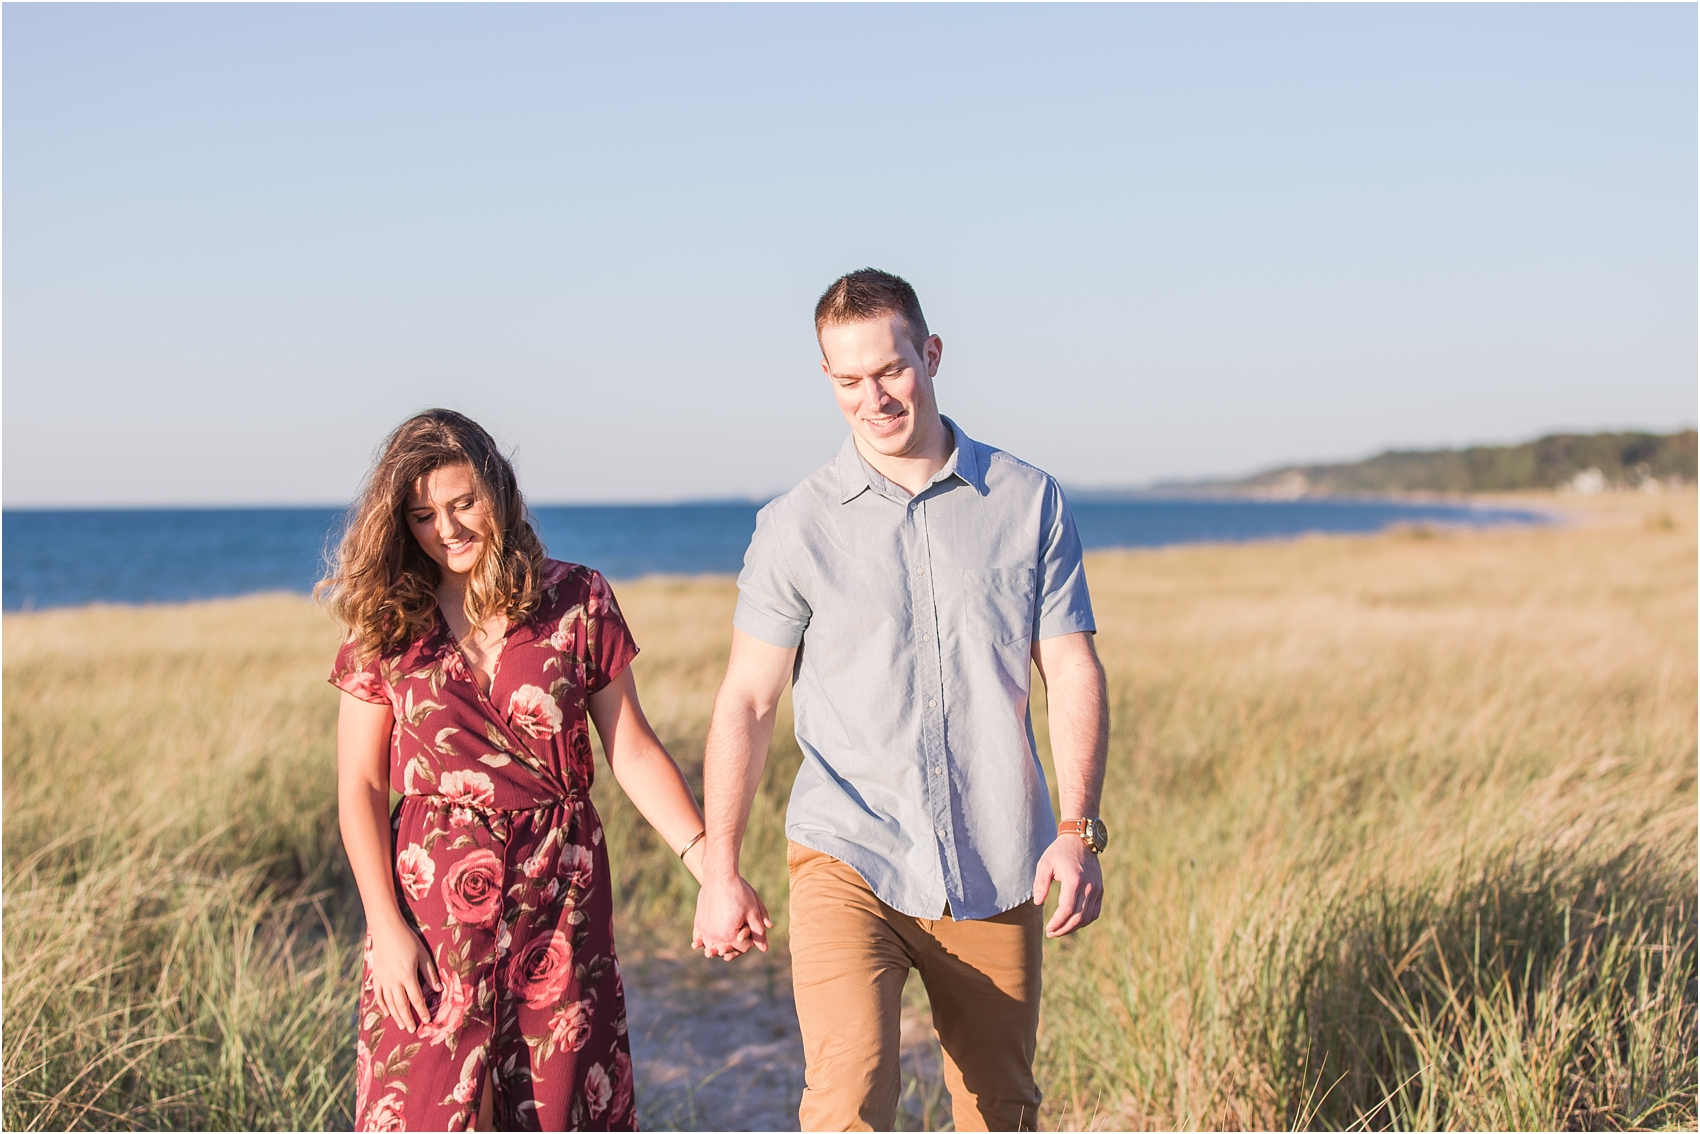 candid-end-of-summer-sunset-engagement-photos-at-silver-beach-in-st-joseph-mi-by-courtney-carolyn-photography_0007.jpg